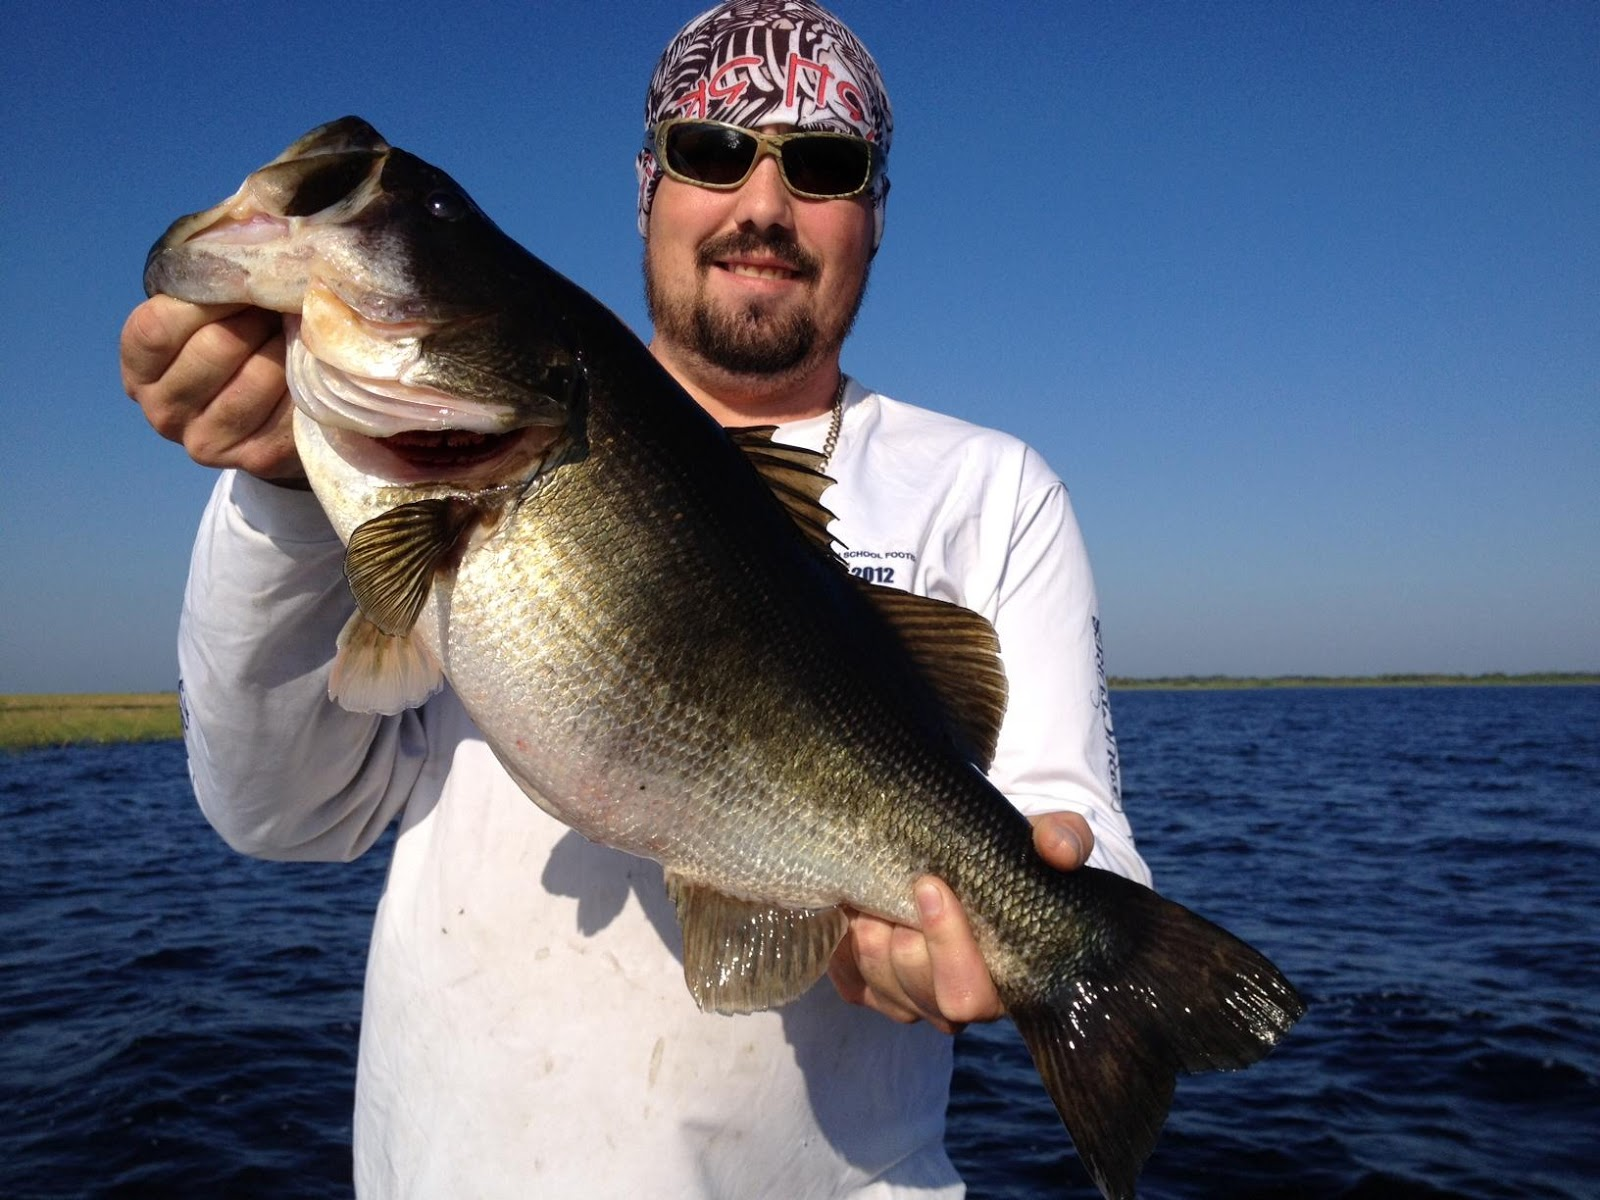 Trophy bass caught on first fishing trip lake okeechobee for Lake okeechobee bass fishing